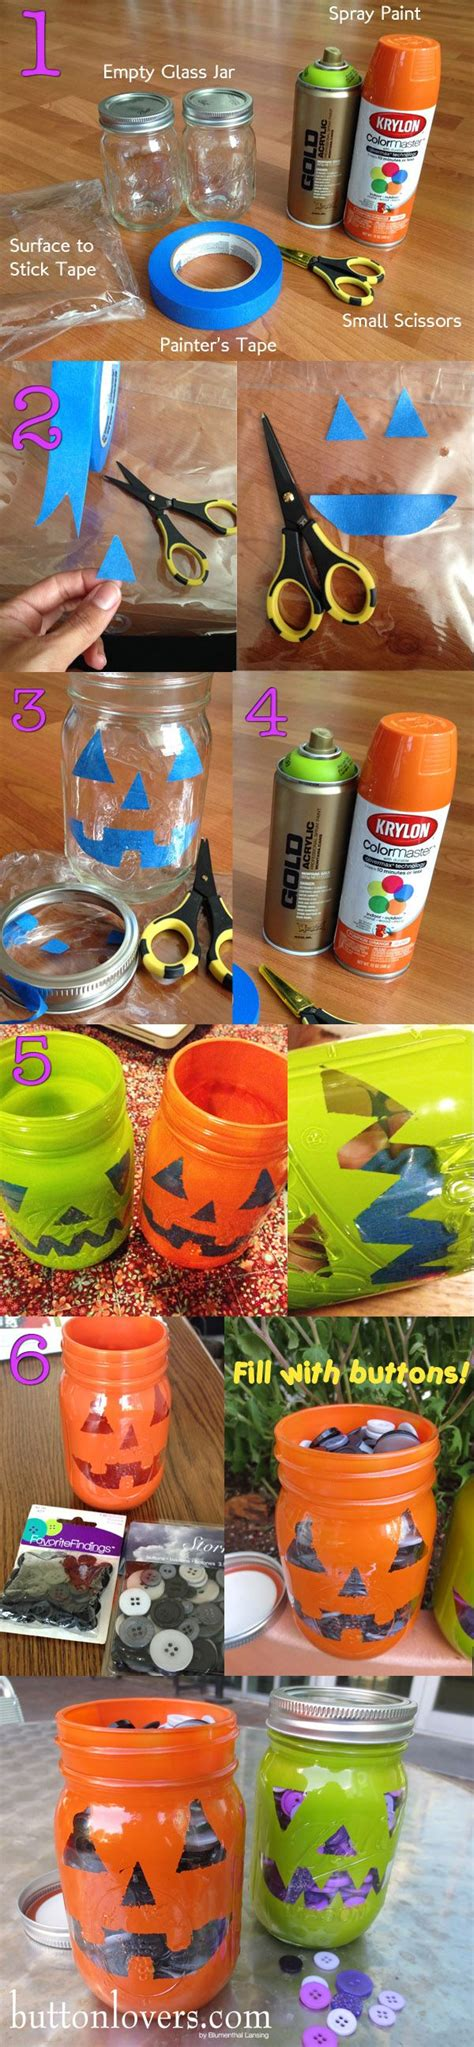 how to make your home ready for halloween design bookmark 3717 1000 images about halloween buttons on pinterest